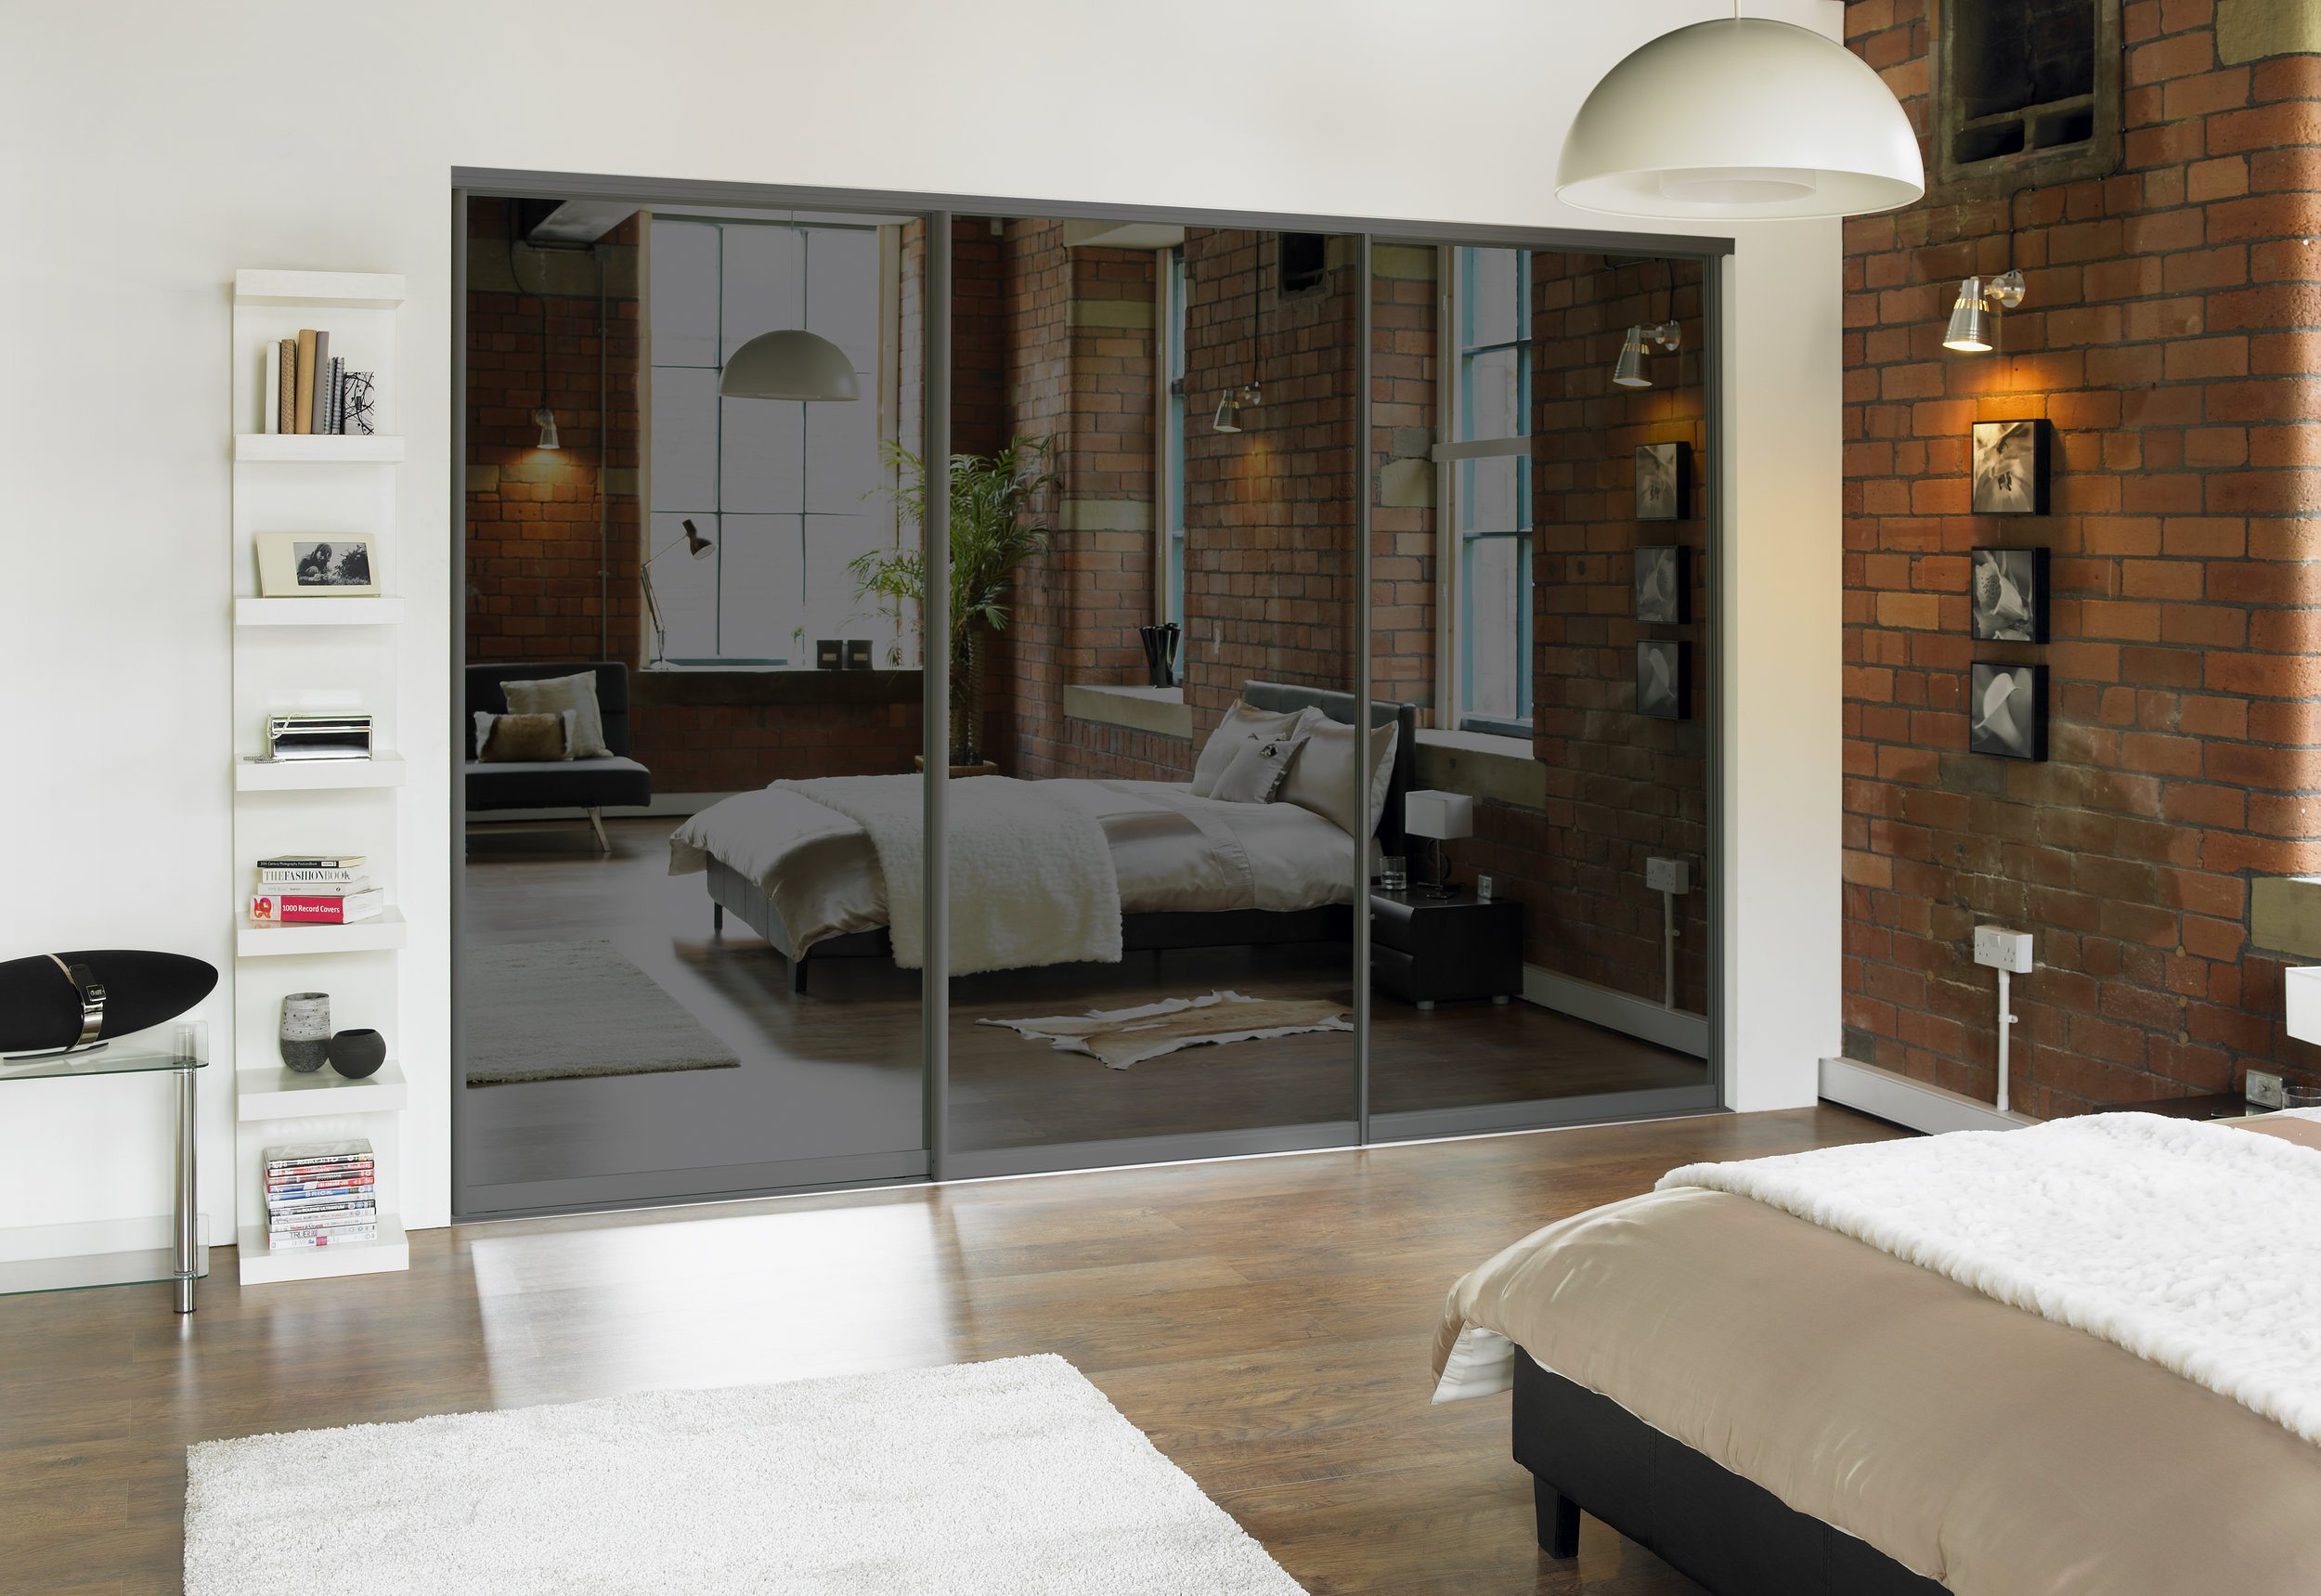 The Simplicity range offers stylish sliding wardrobes, in a diverse range of finishes.